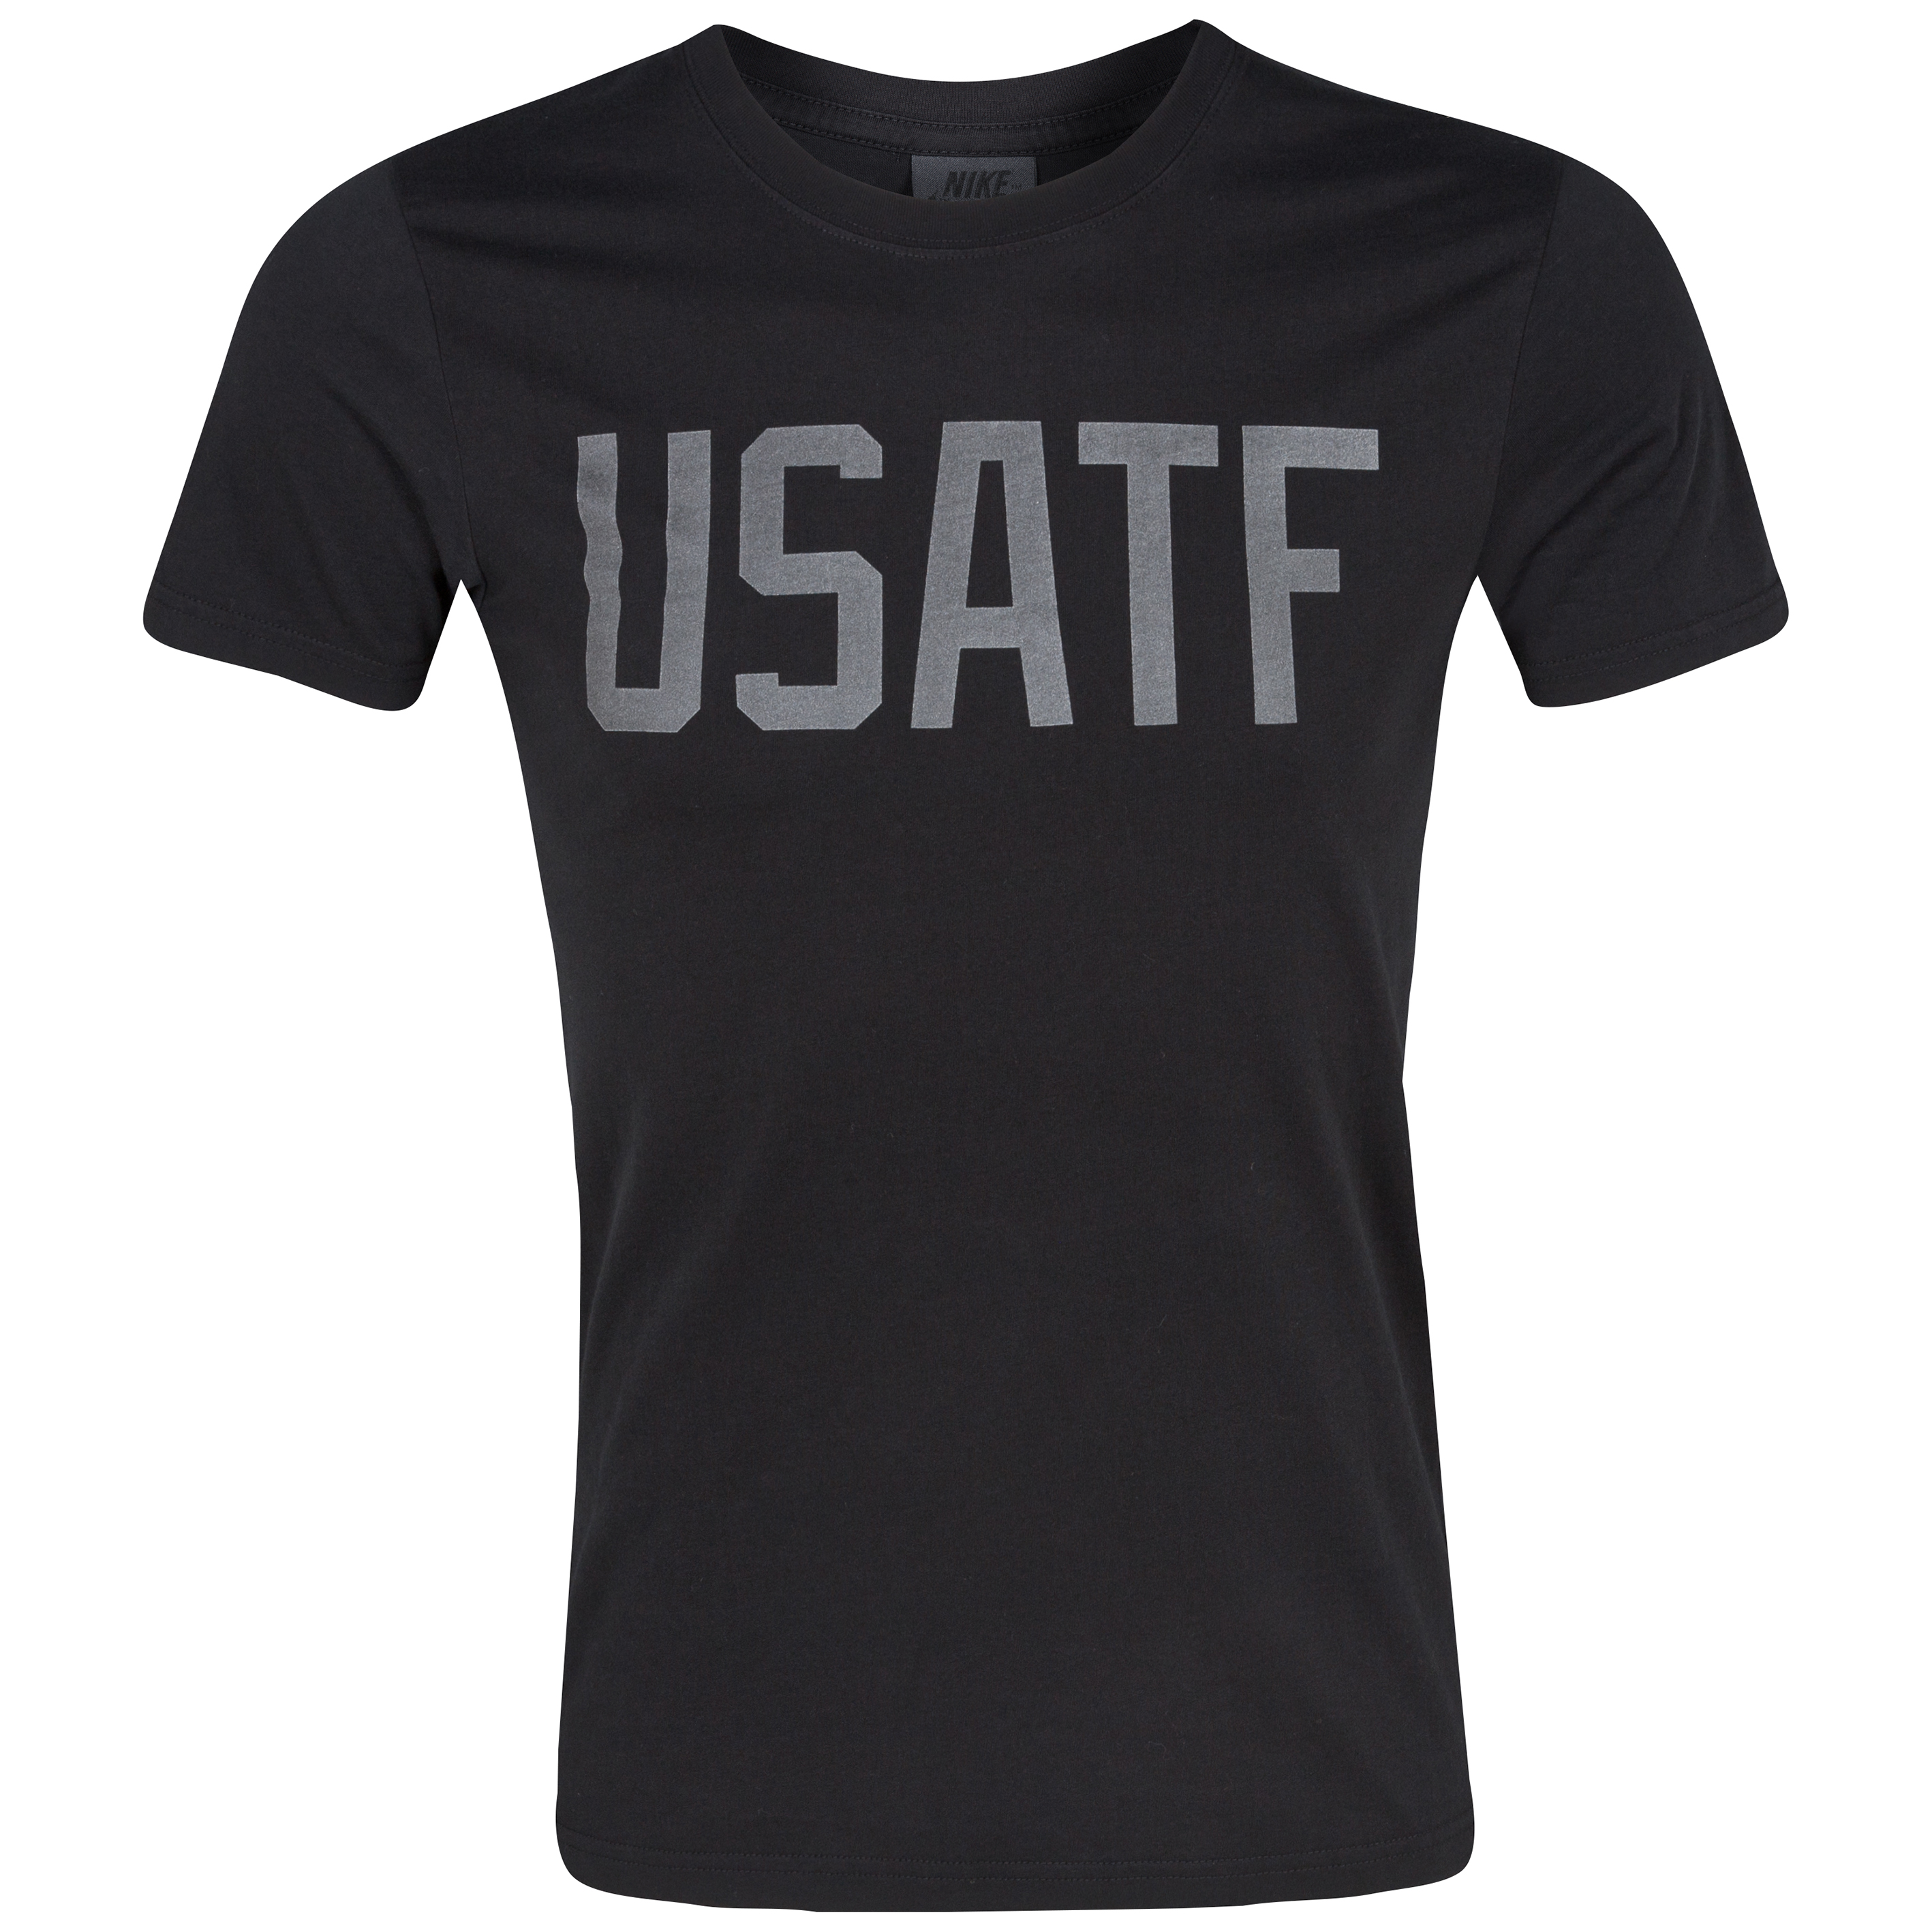 Nike USATF T-Shirt - Black